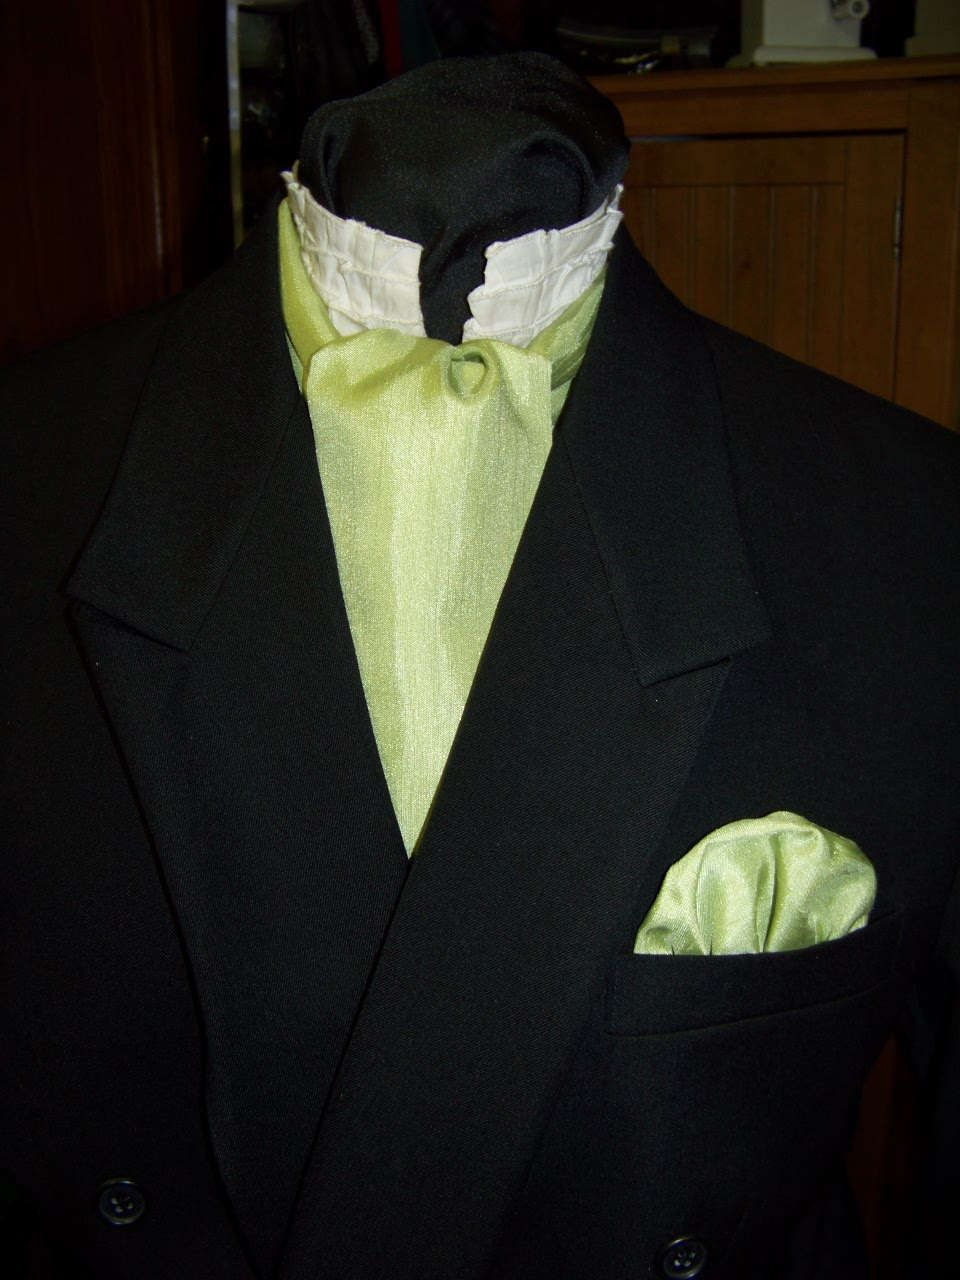 """Ascot or Carvat with pocket square puff Mint Green Matt Satin with Ridges fabric 4"""" x 57"""" Mens Historial Bow Tie or Wedding, cravat tie by civilwarlady on Etsy"""